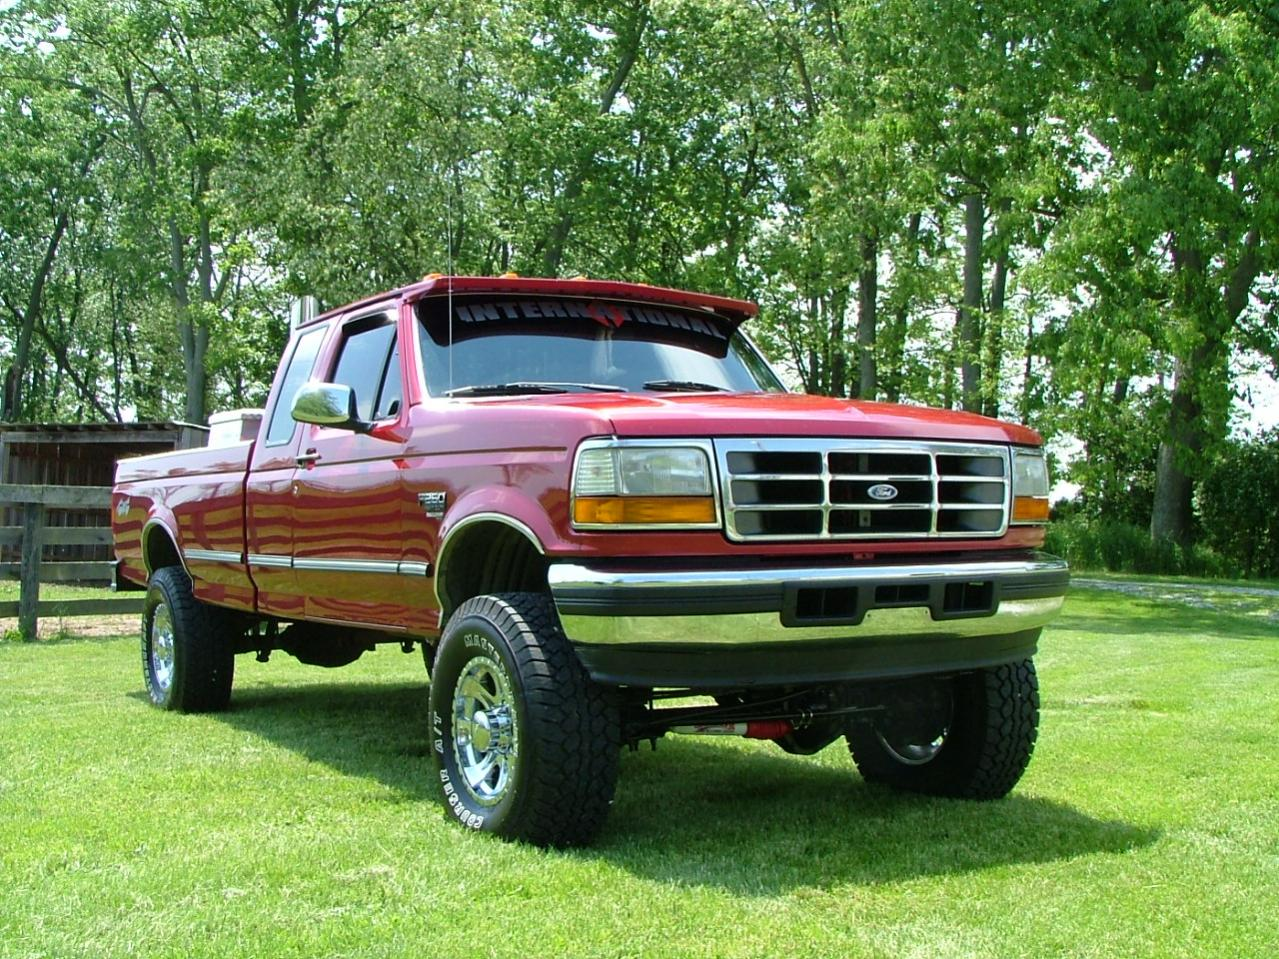 Ford f-250 1989 photo - 1